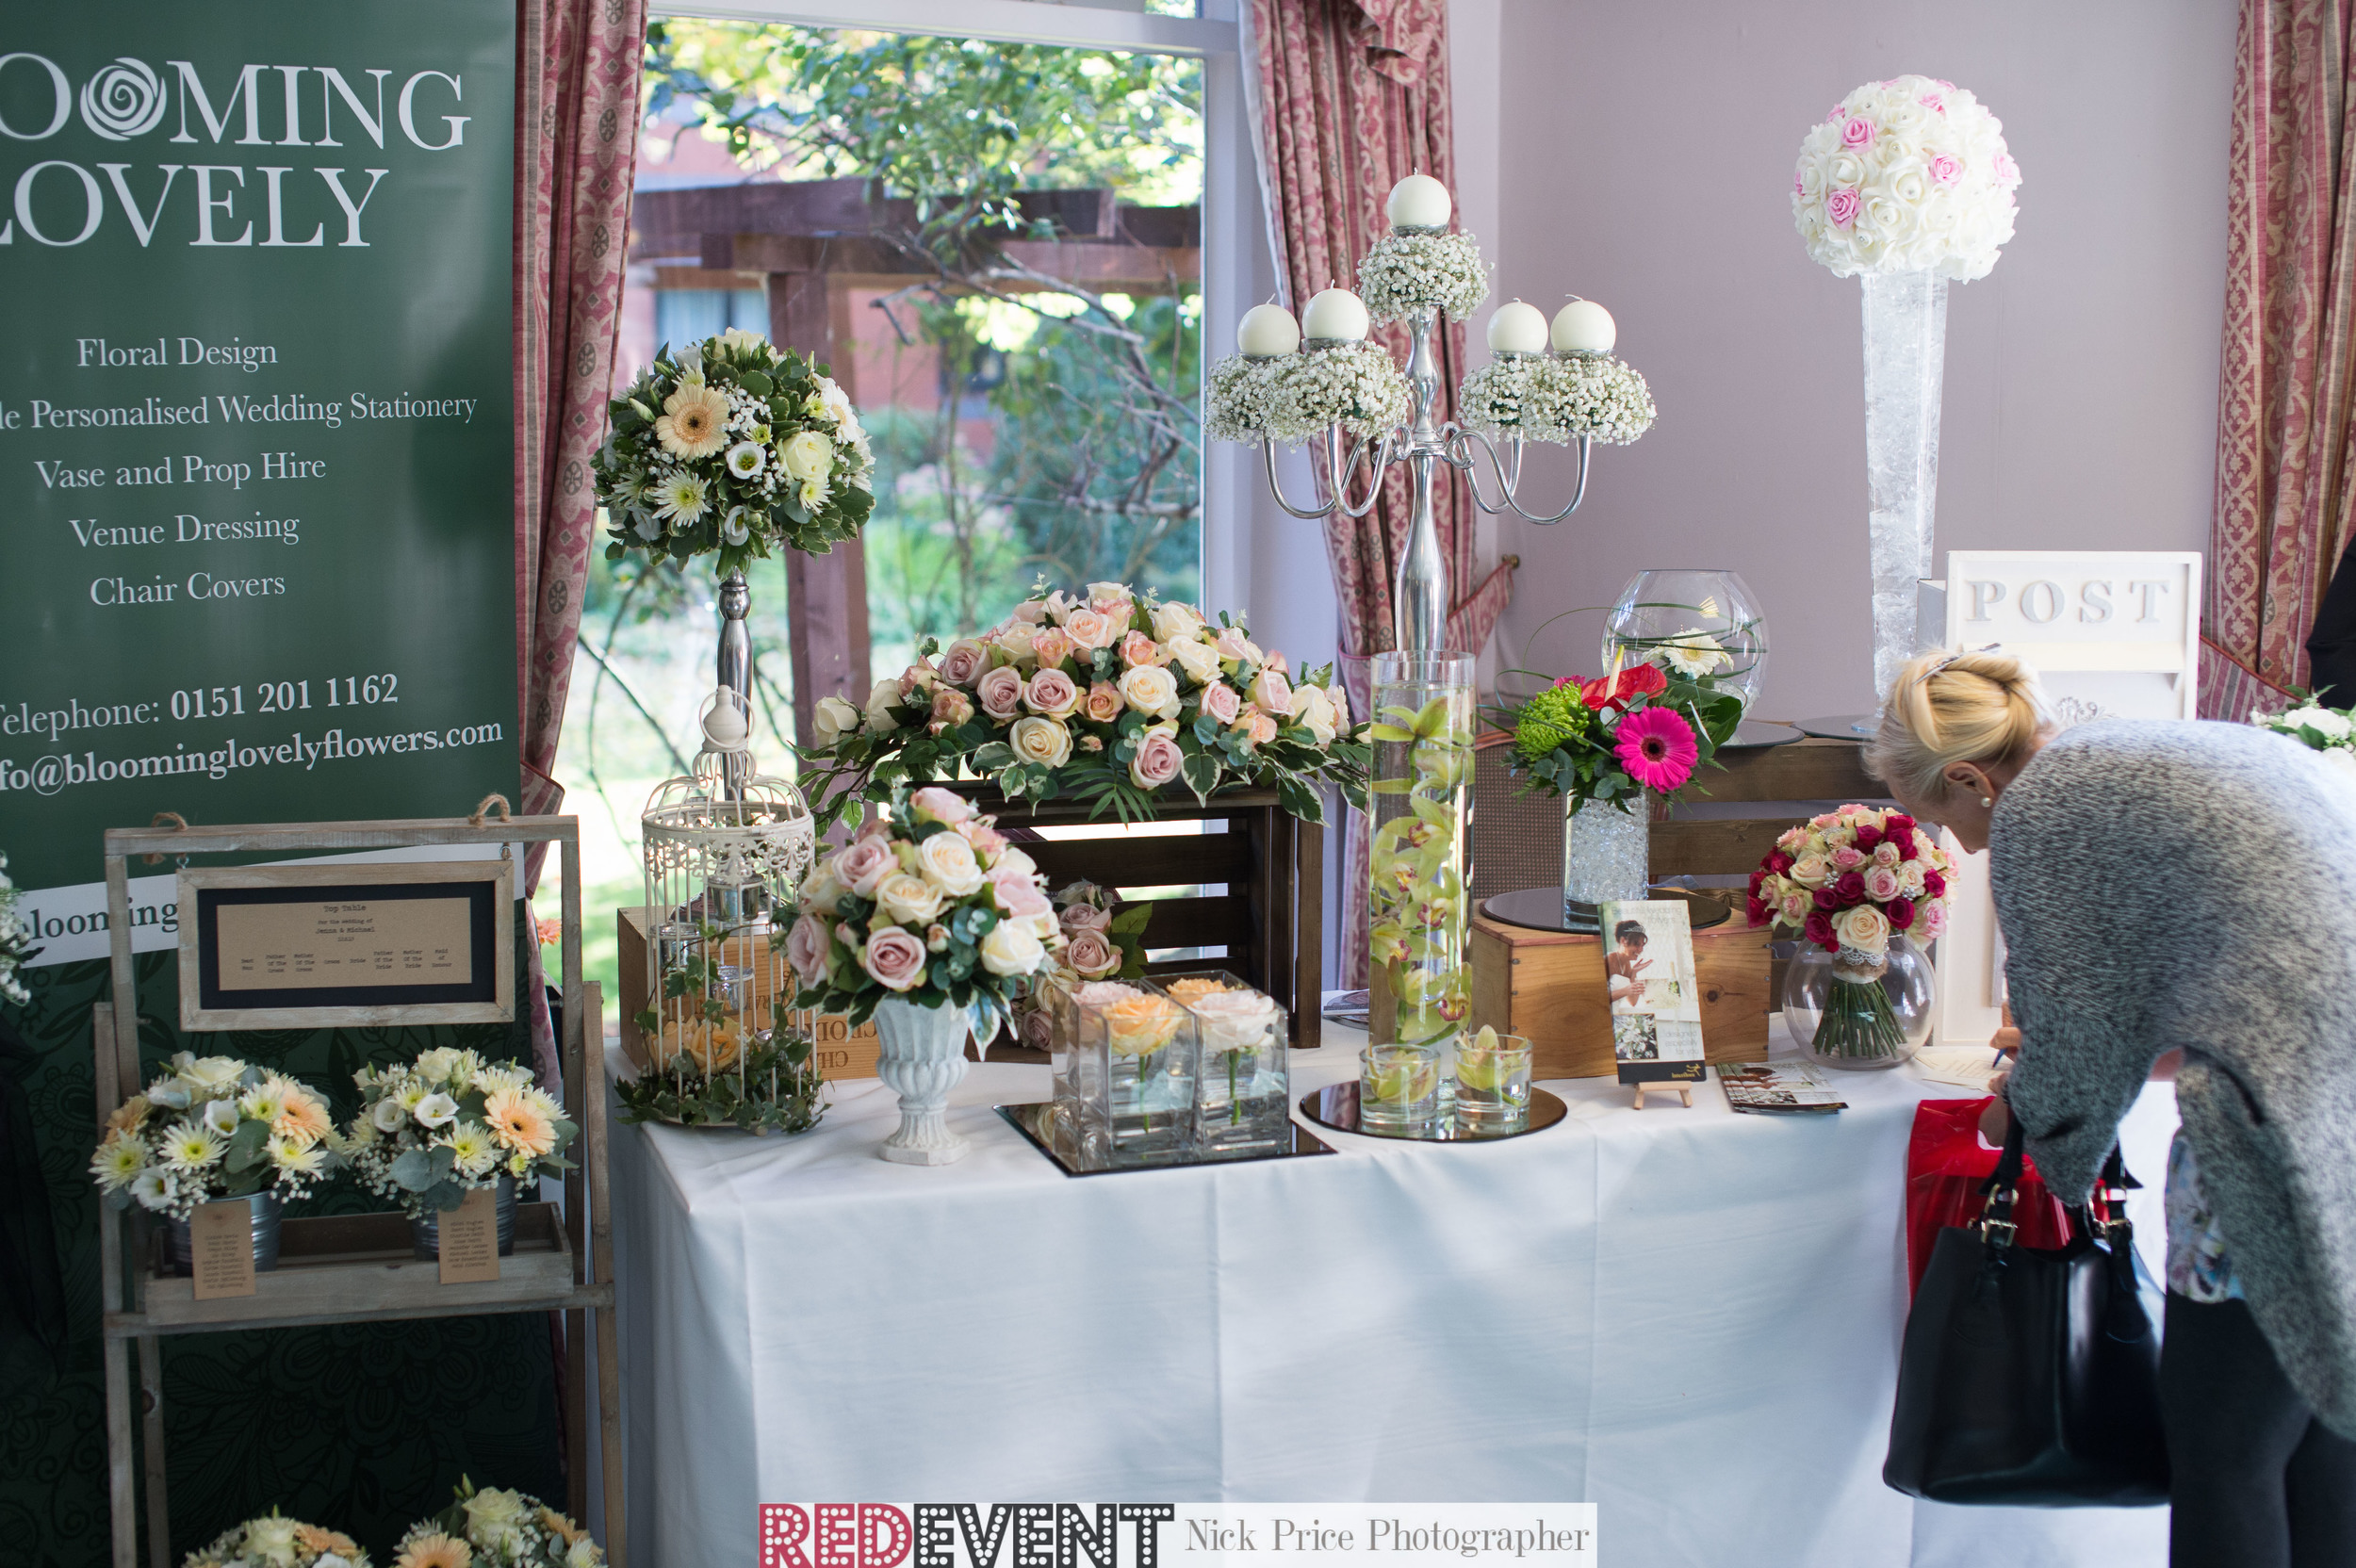 Blooming Lovely showcasing stunning wedding flowers